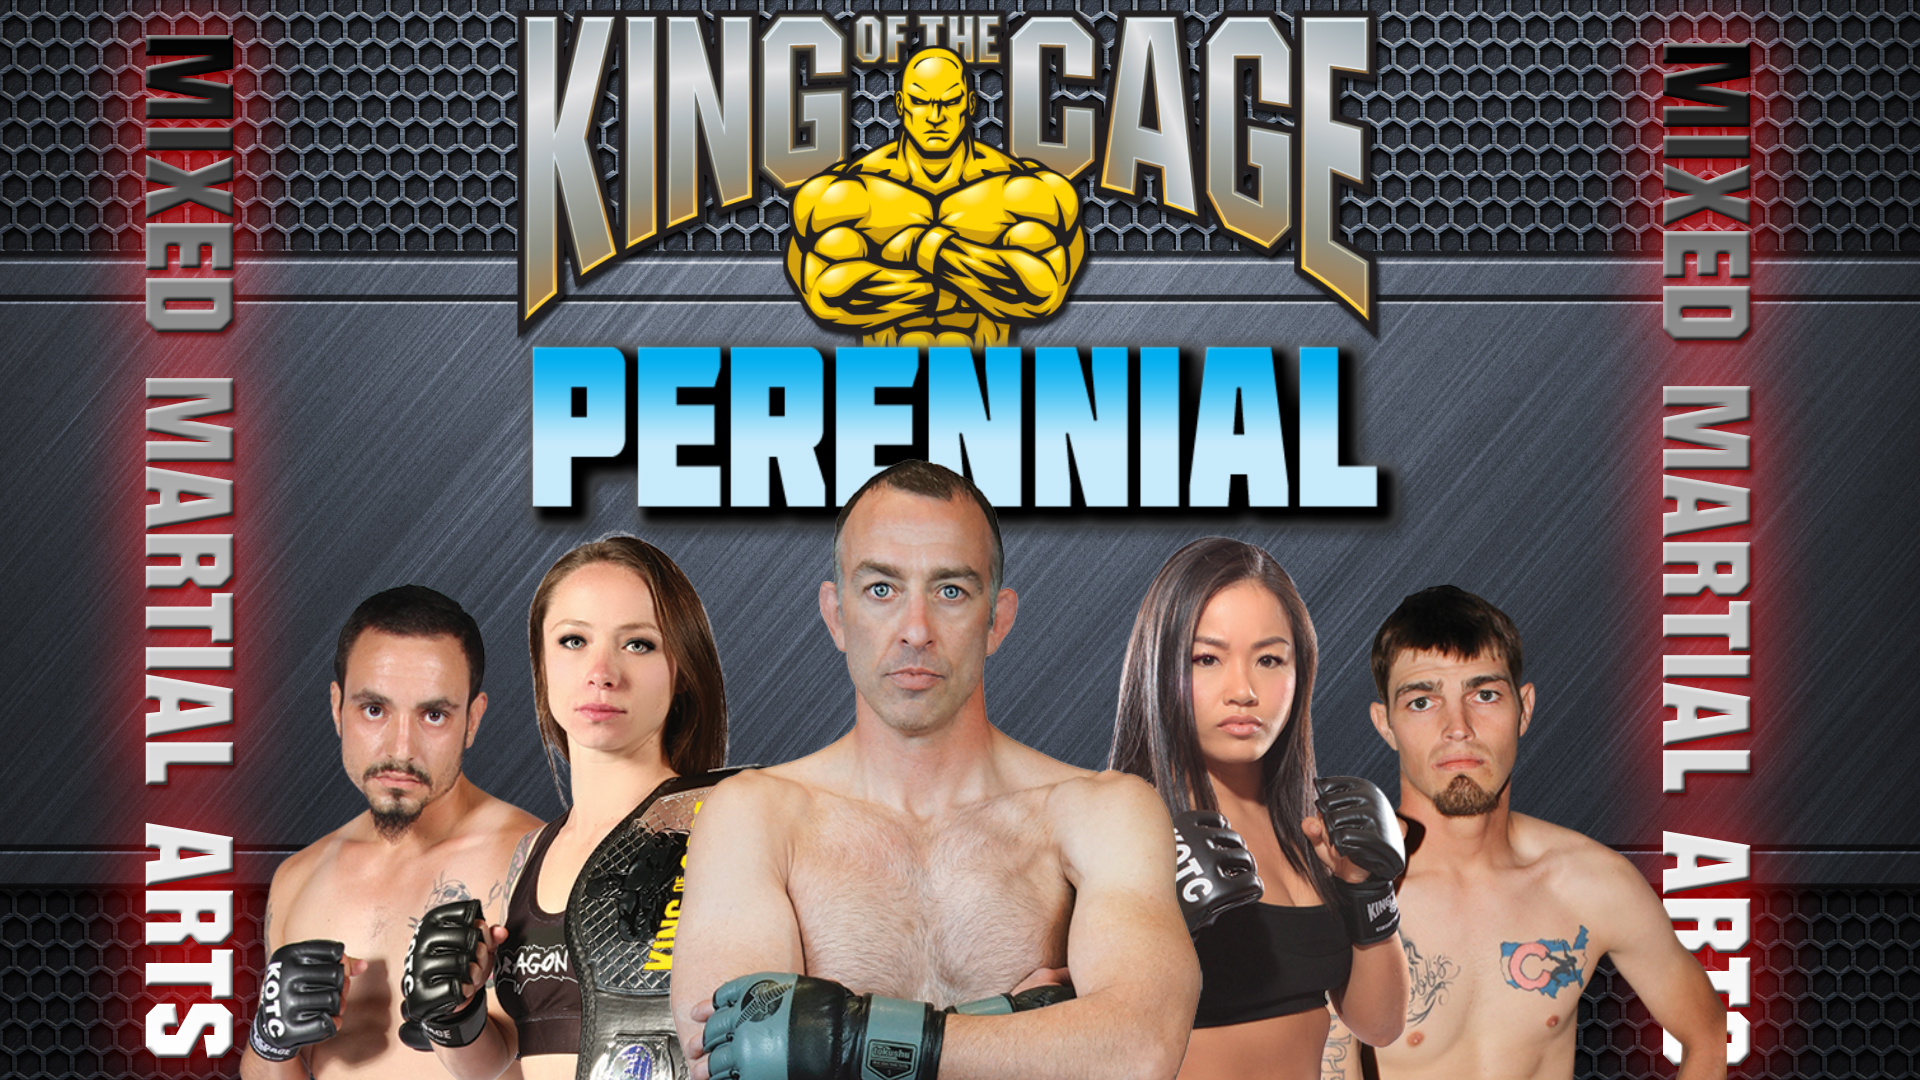 King of the Cage Perennial